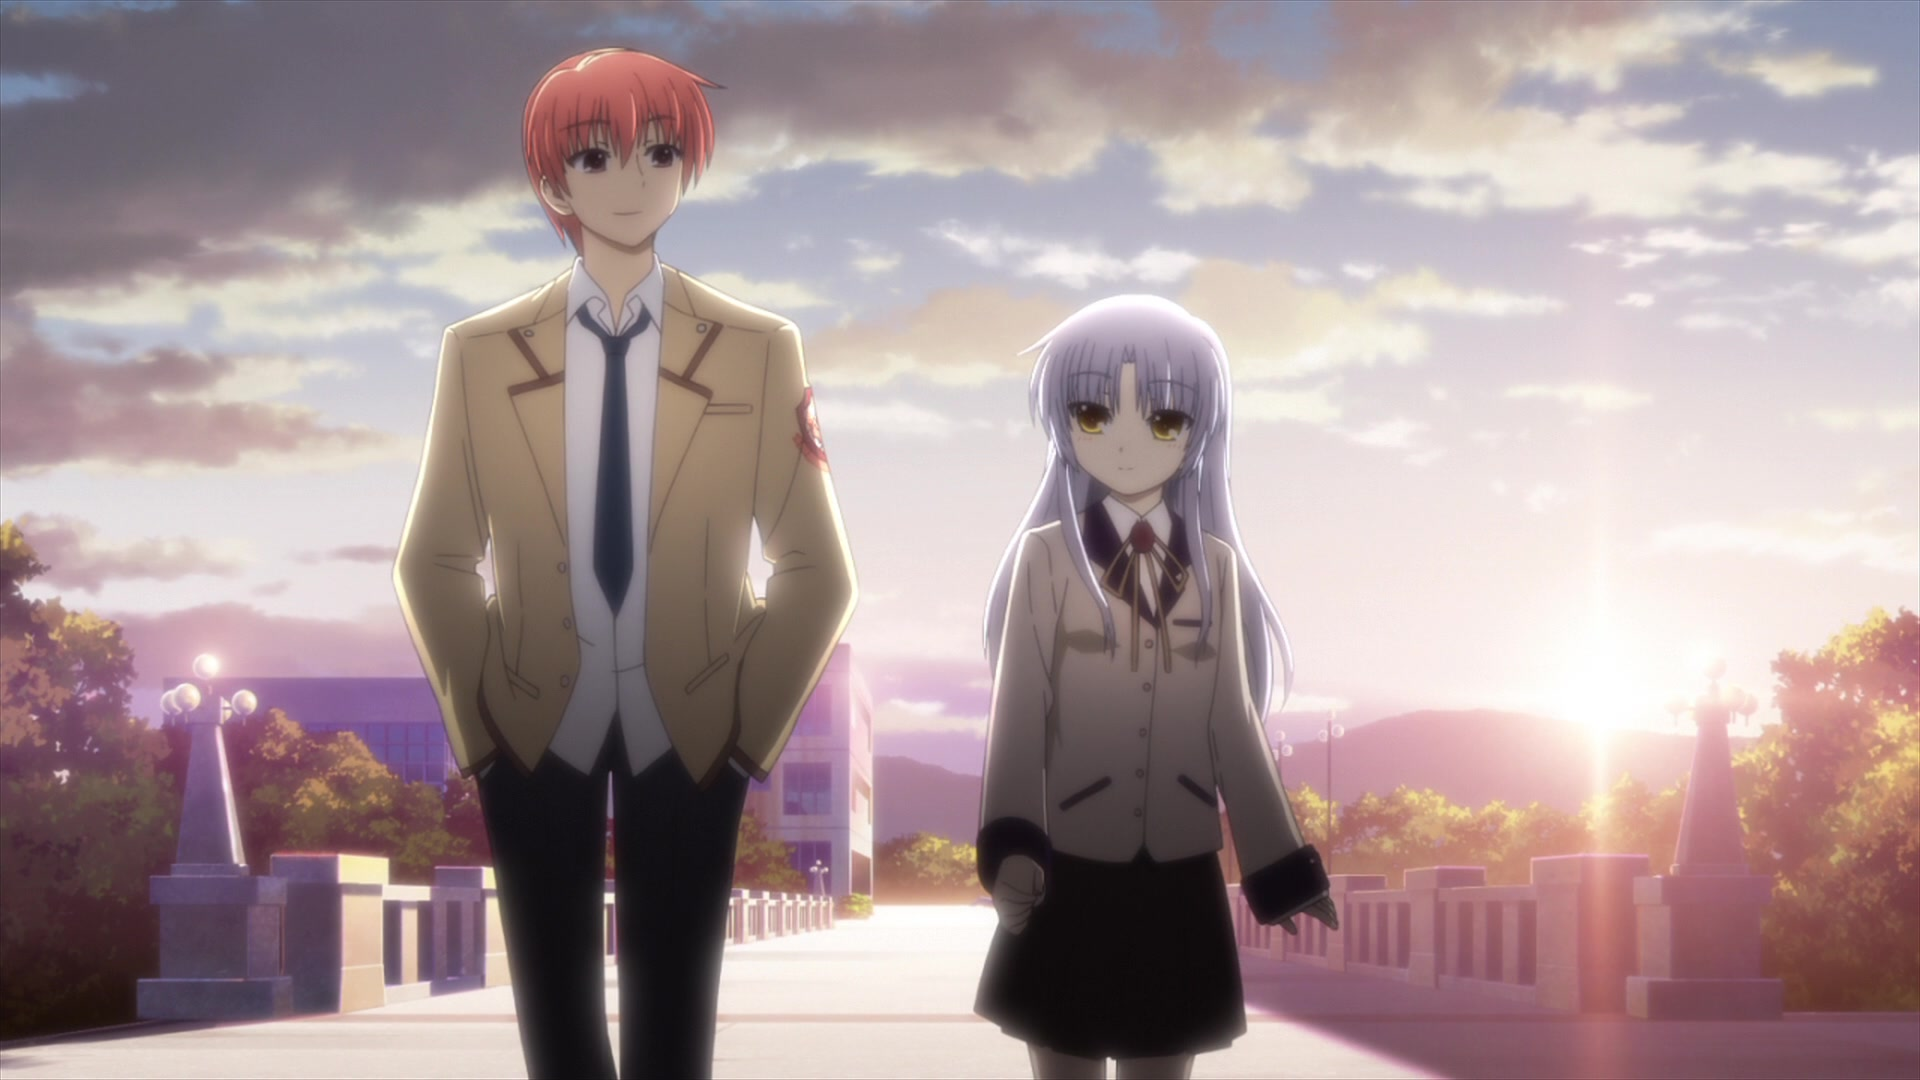 angel-beats-otonashi-and-kanade.jpg